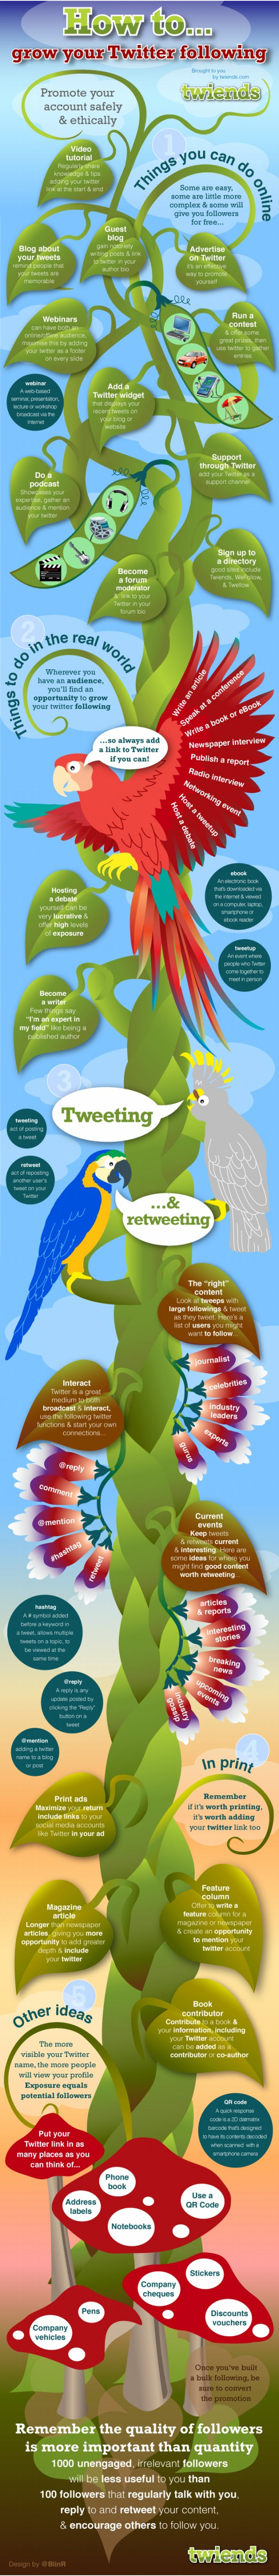 More Great Ideas for Growing Your Twitter Followers